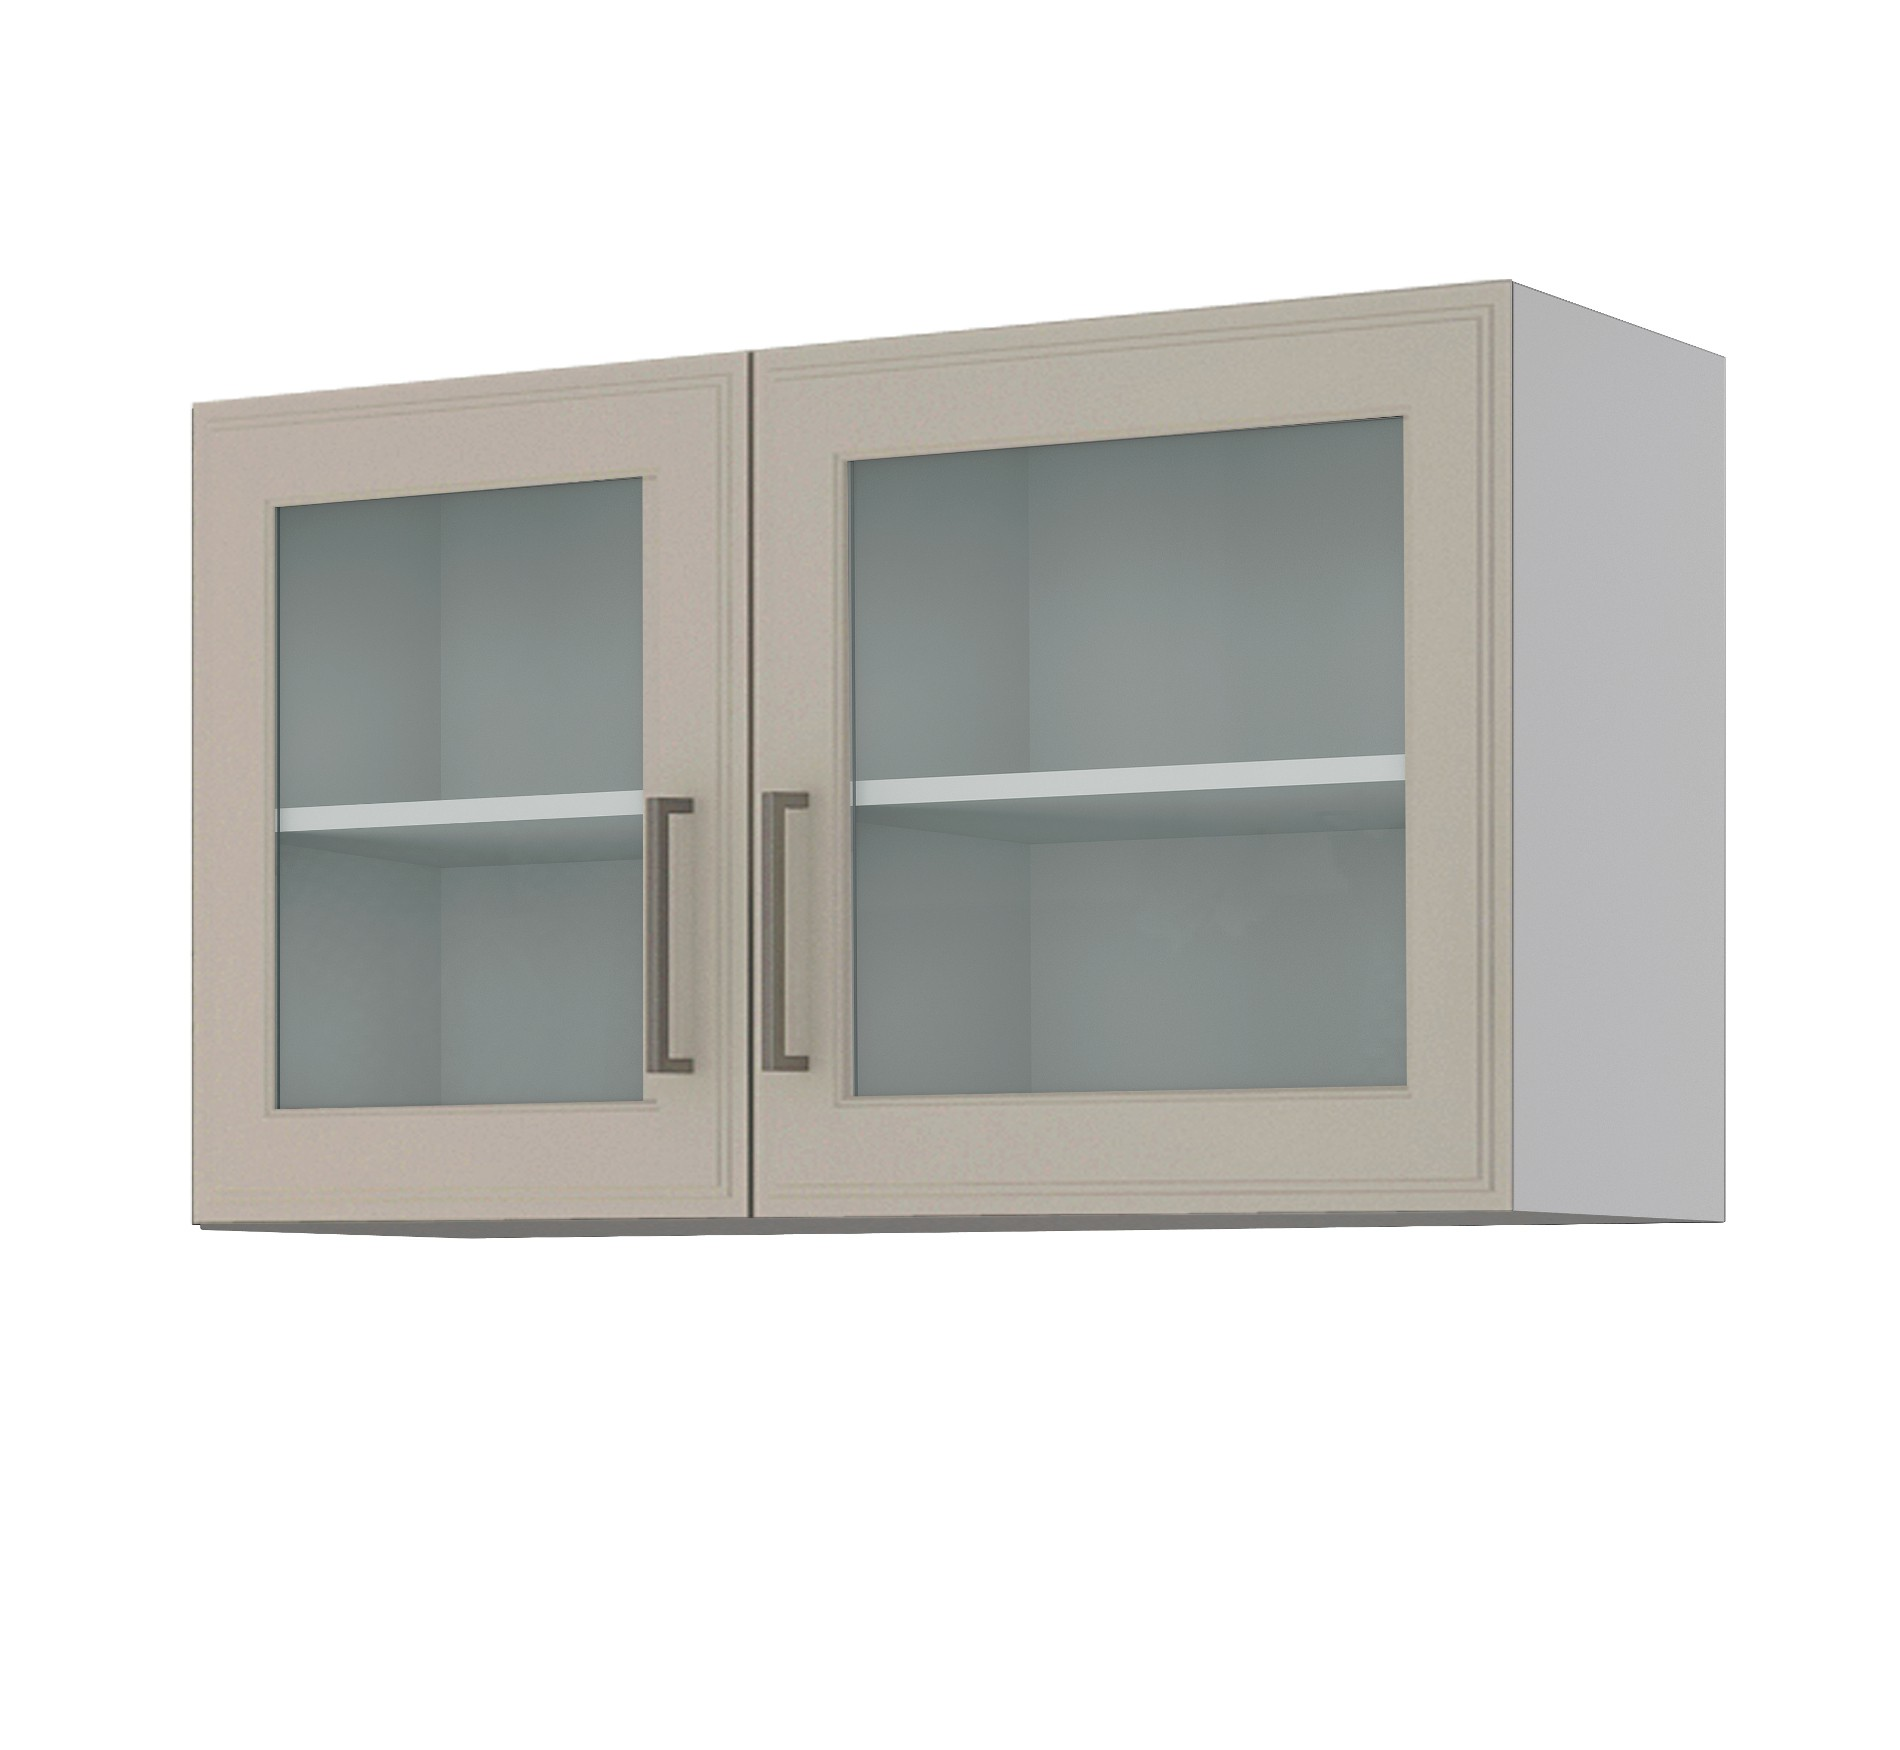 glas h ngeschrank k ln glasschrank oberschrank mit 2 glast ren 100 cm weiss ebay. Black Bedroom Furniture Sets. Home Design Ideas